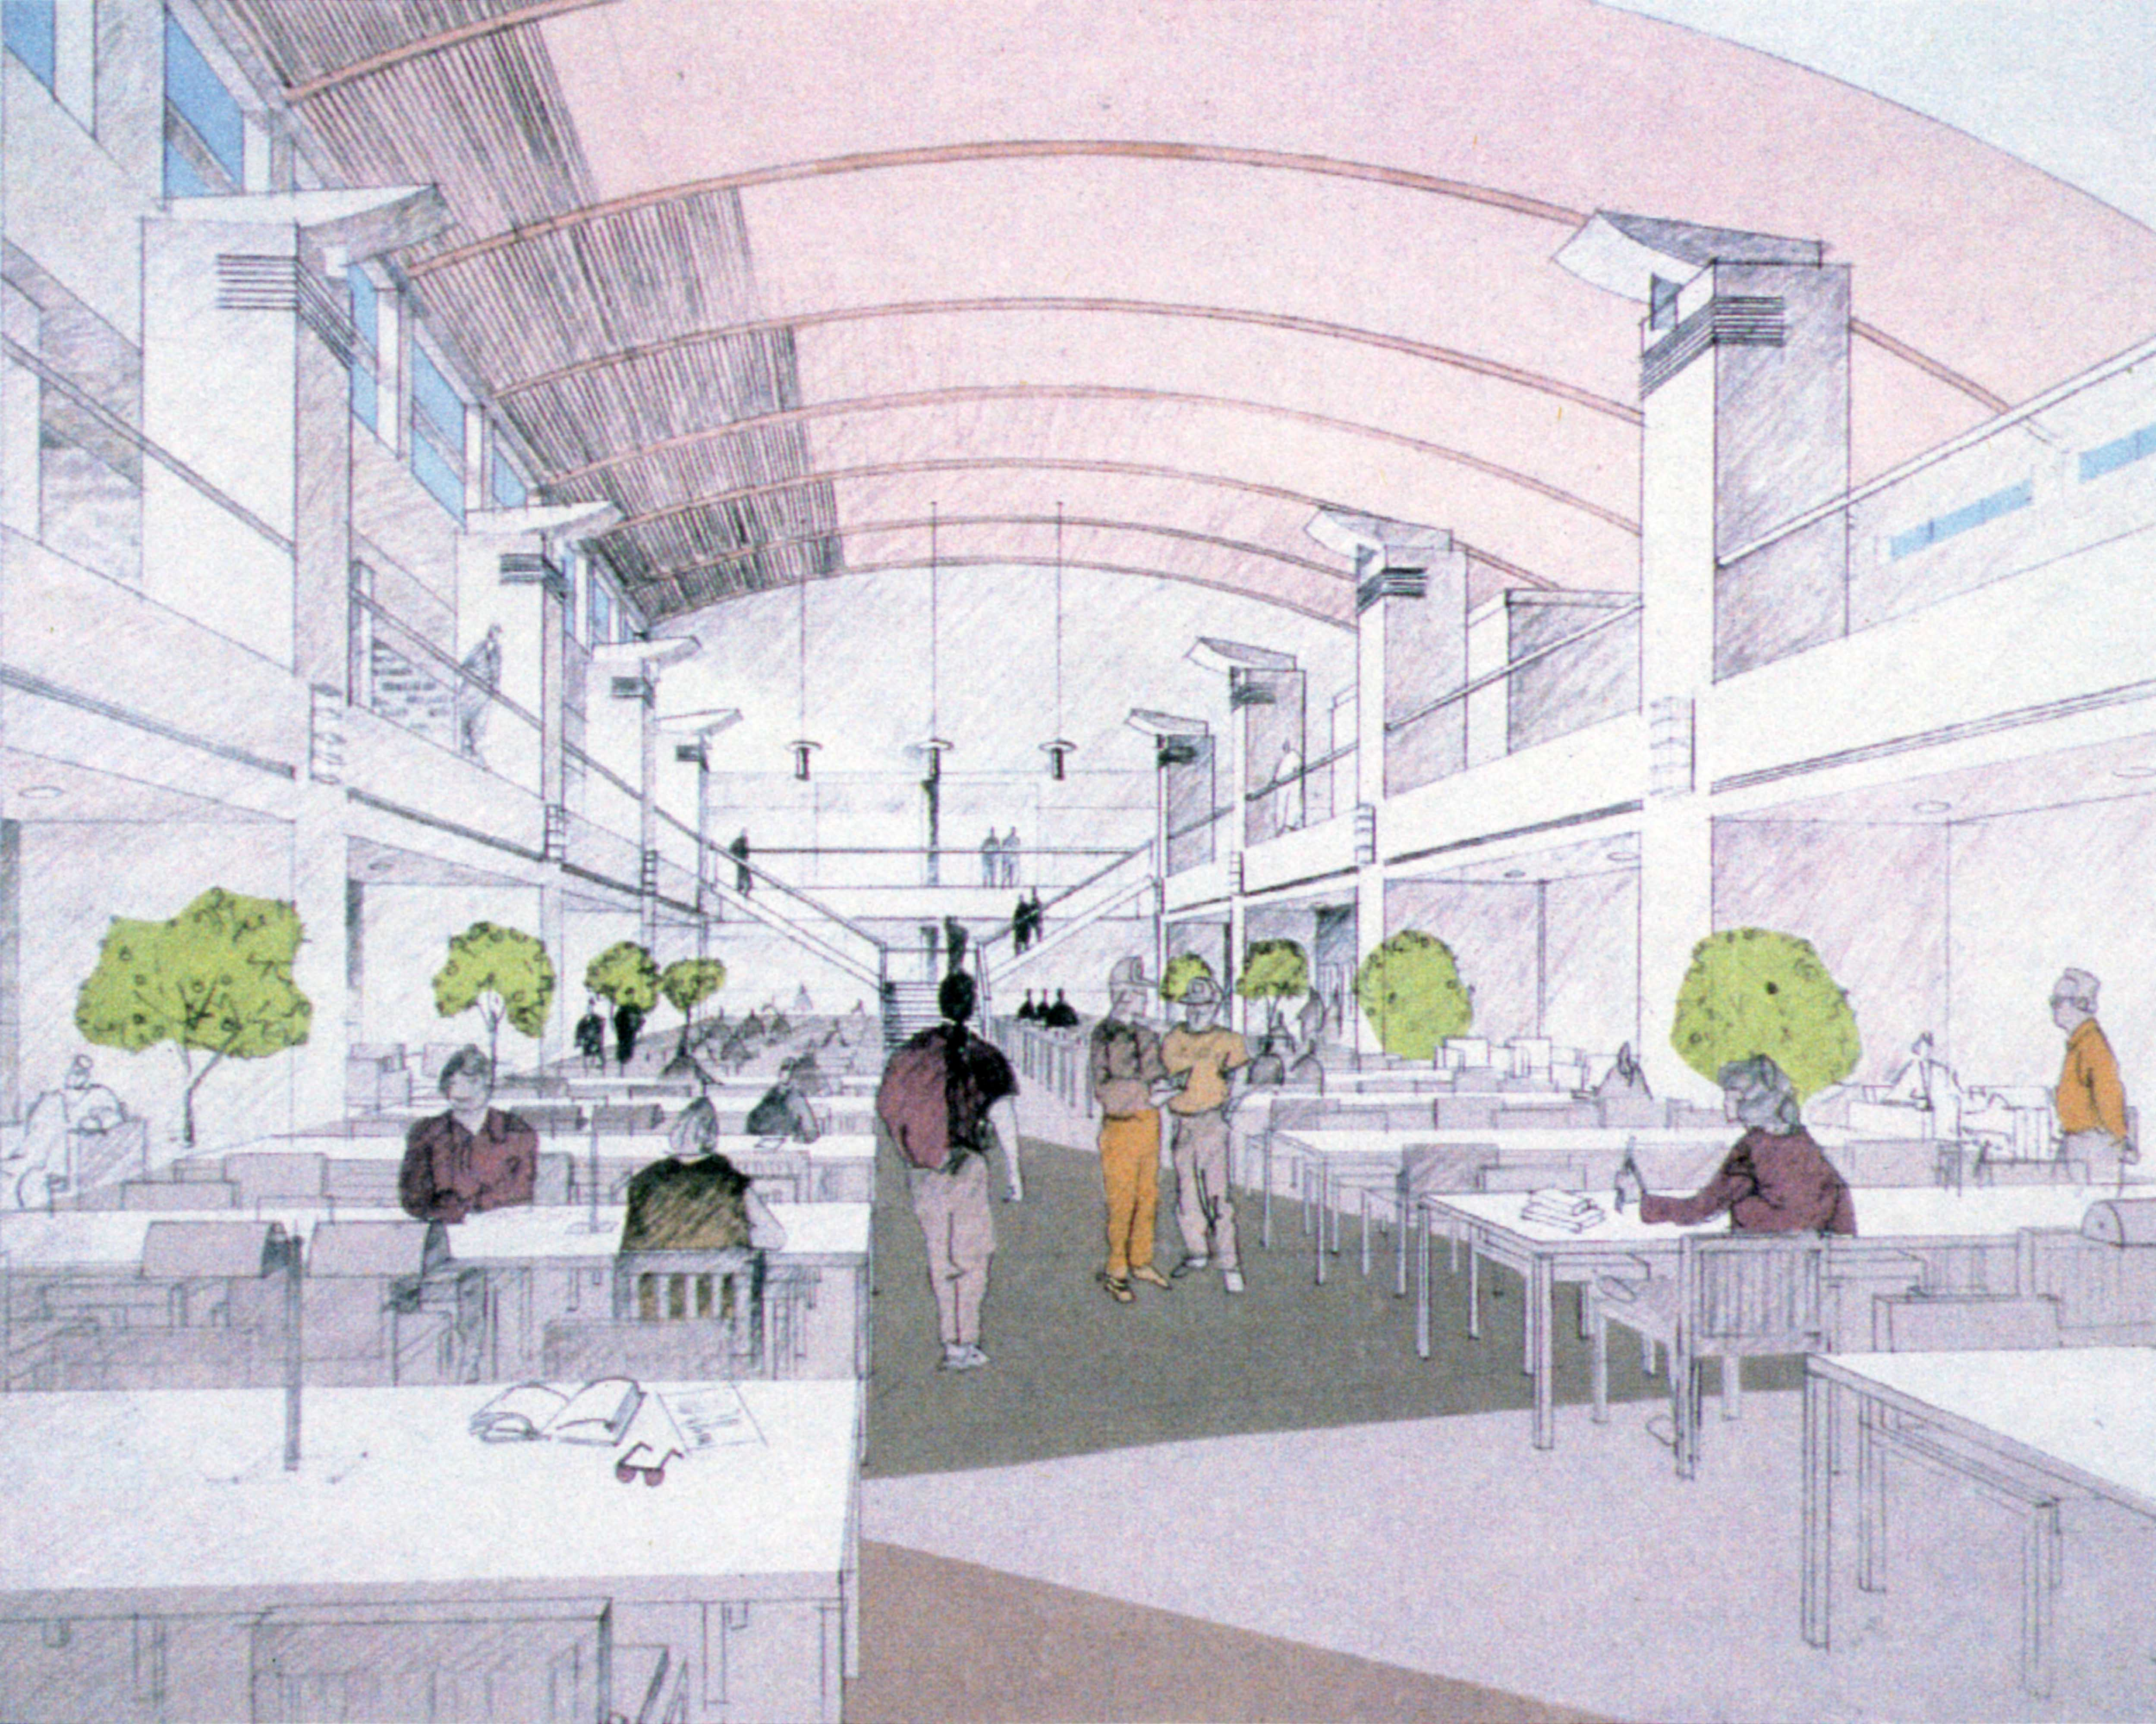 Drawing of Miller Center reading court